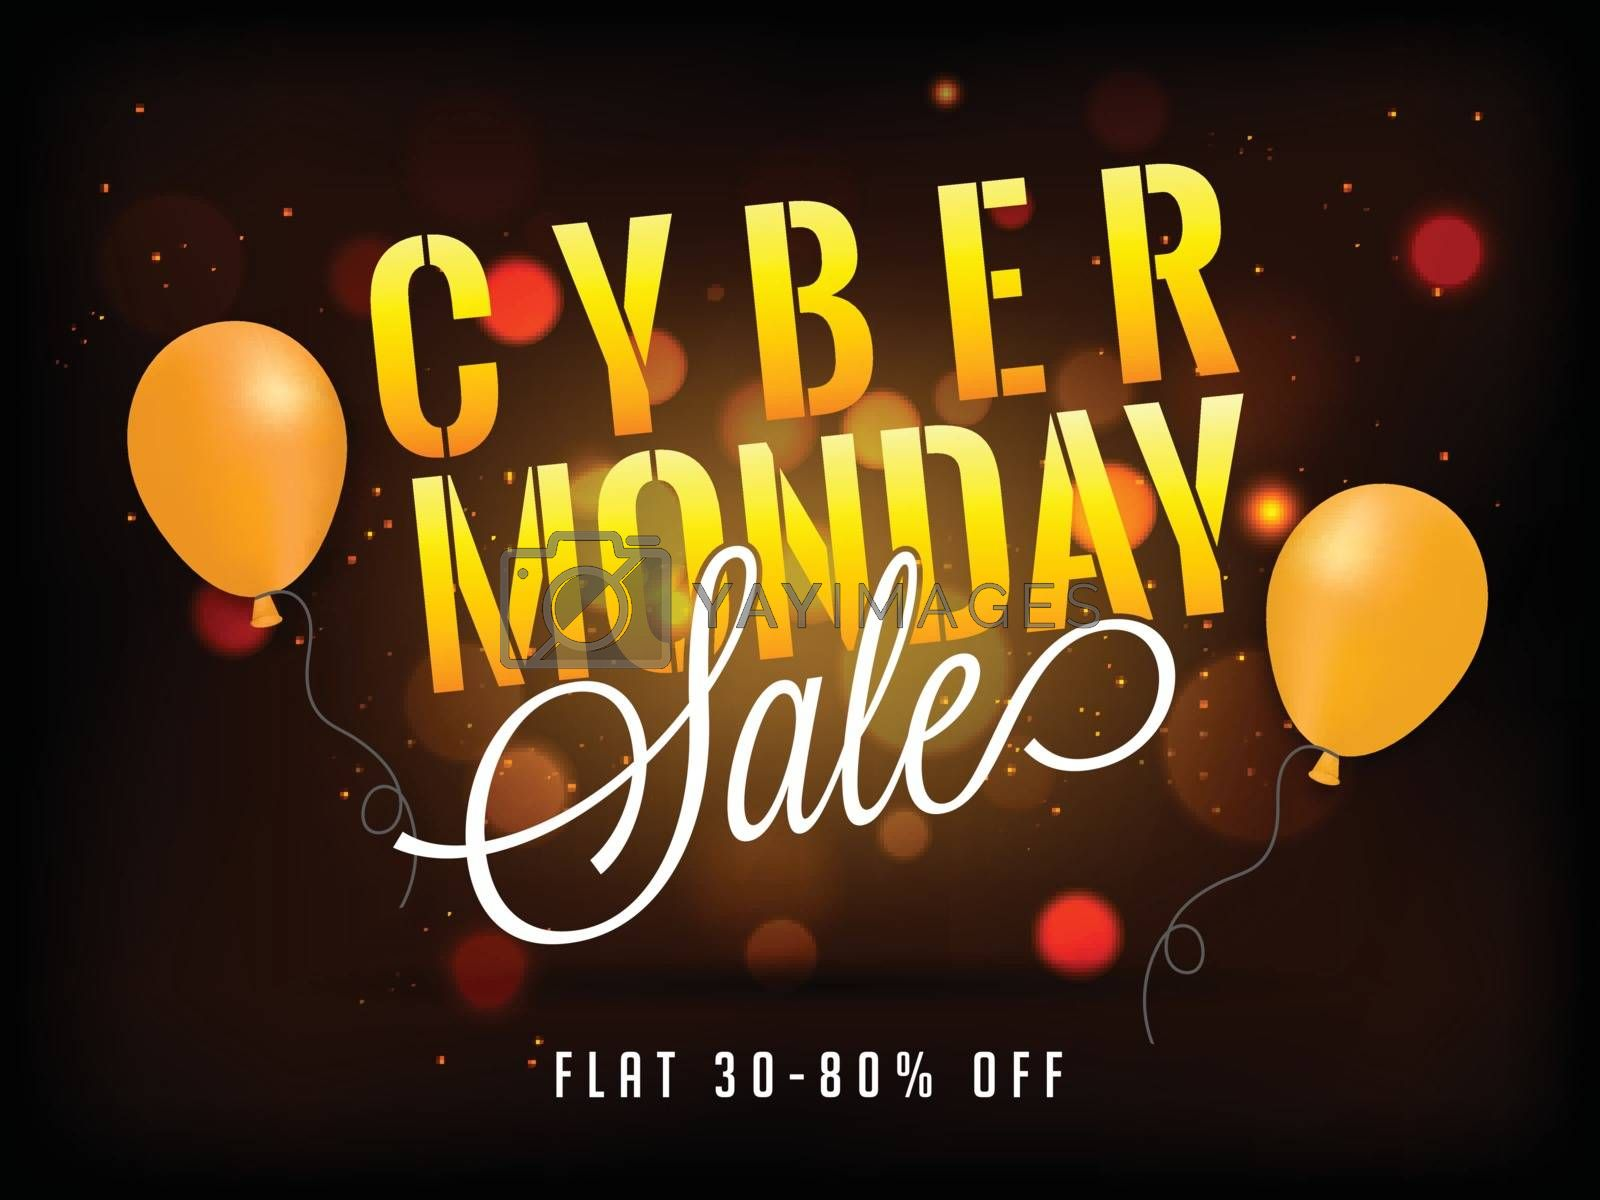 Cyber Monday sale poster or banner design with 30-80% discount offer on brown blurred background.